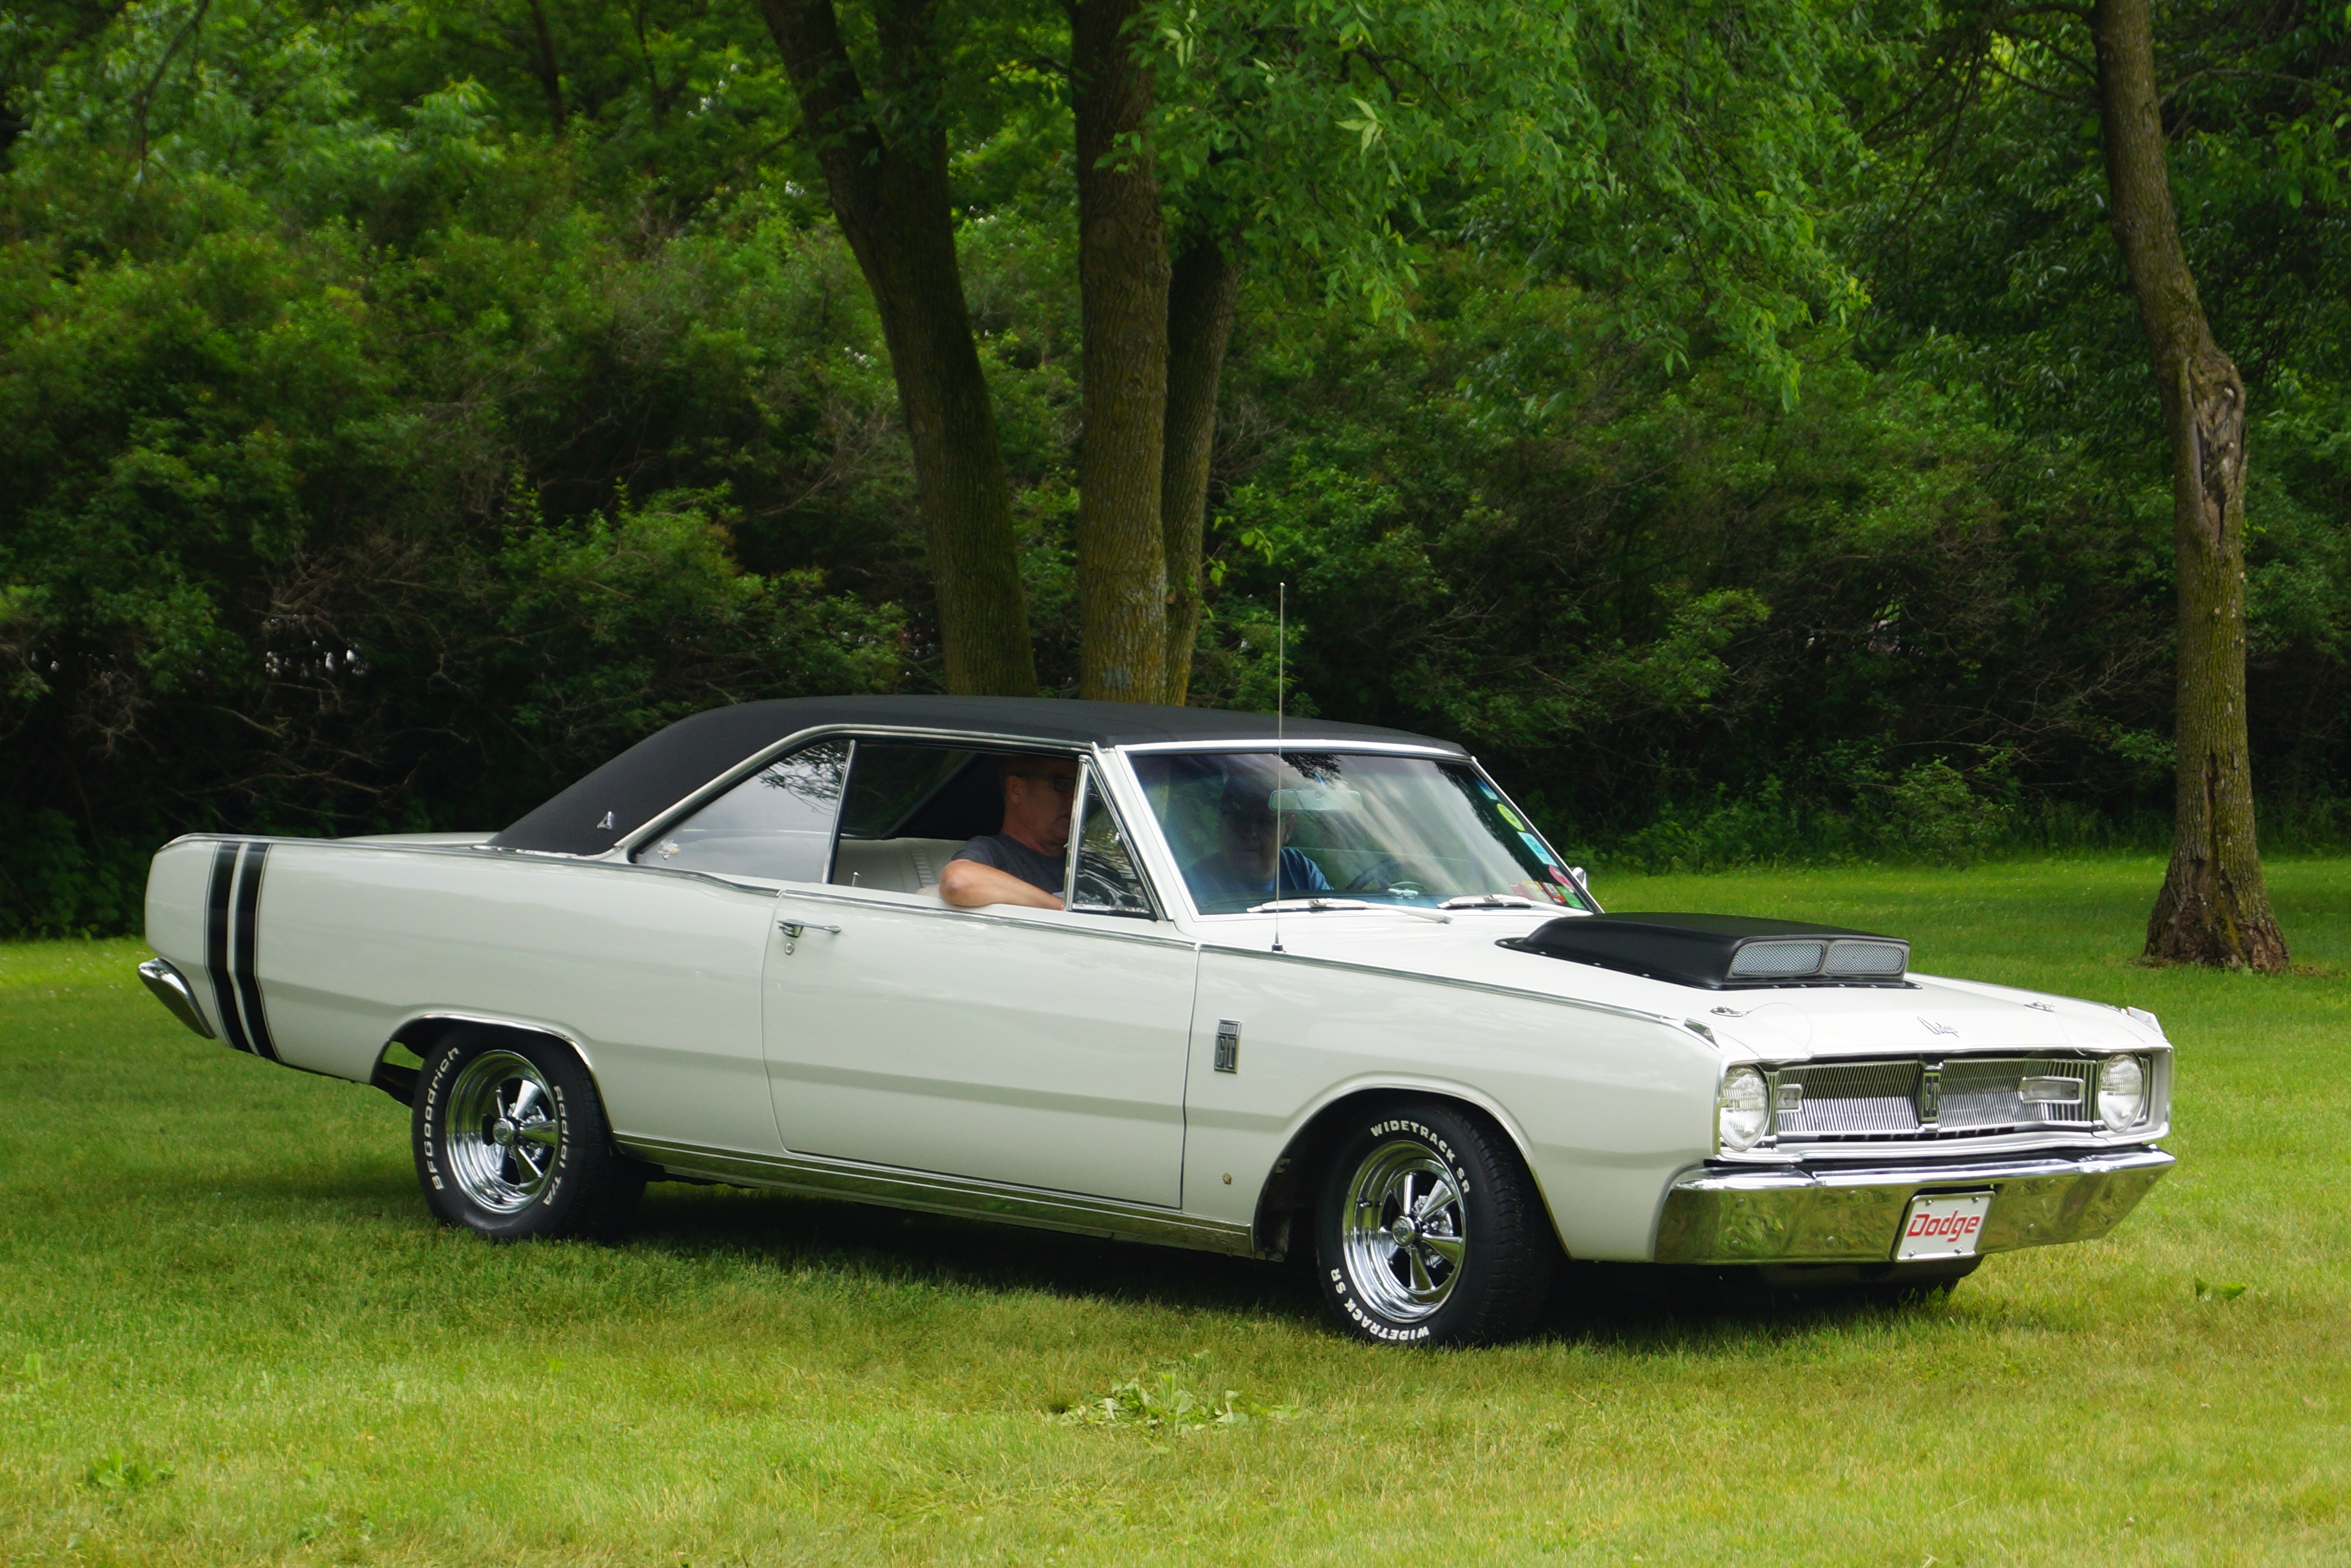 1967 Dodge Dart >> File 1967 Dodge Dart Gts 26880241784 Jpg Wikimedia Commons